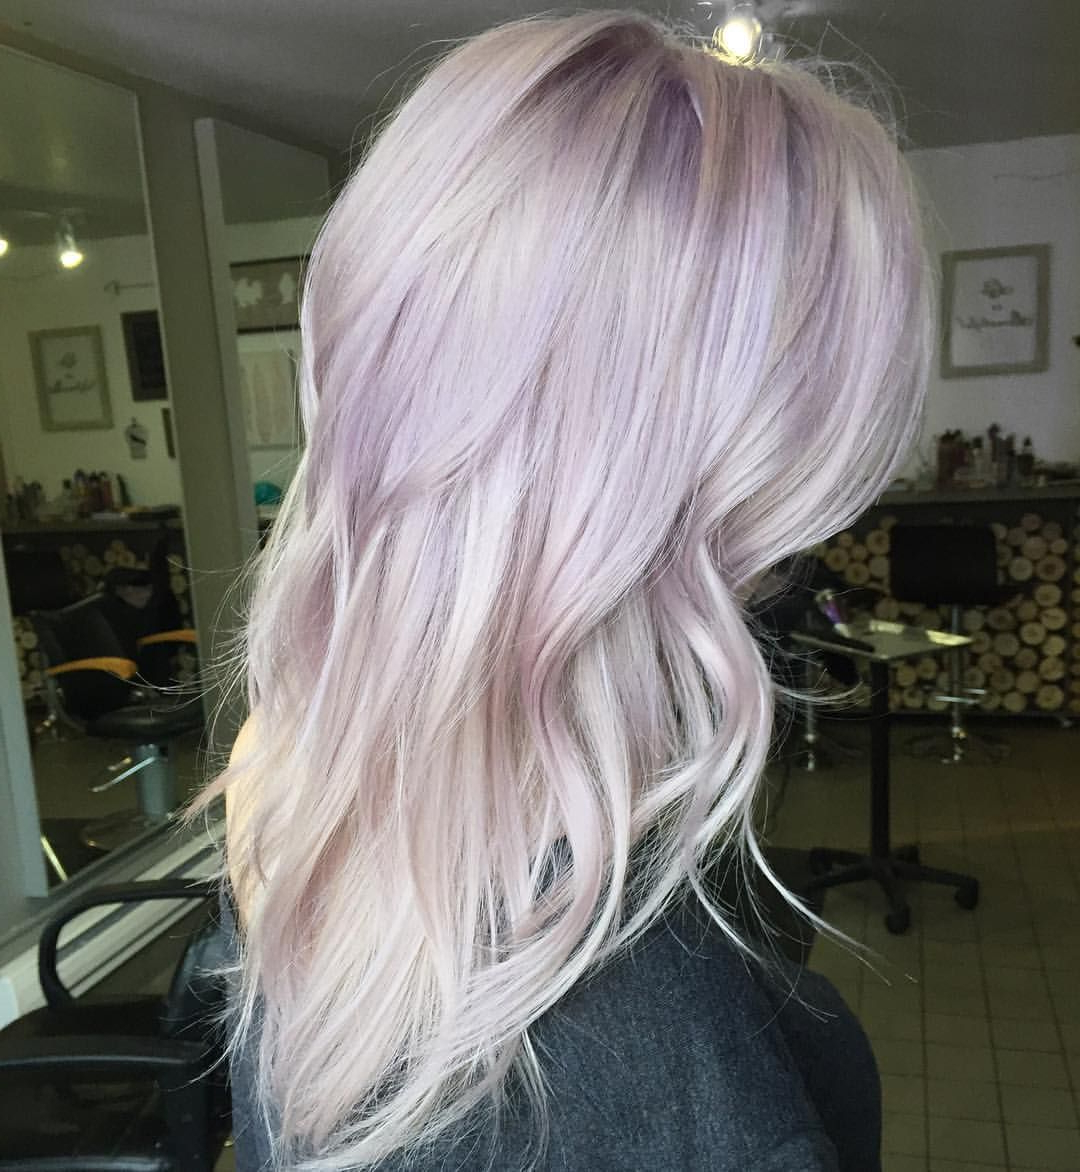 A Touch Of Lilac For This Blonde Beauty | Magical Hair Colors In For Lavender Hairstyles For Women Over 50 (Gallery 10 of 20)